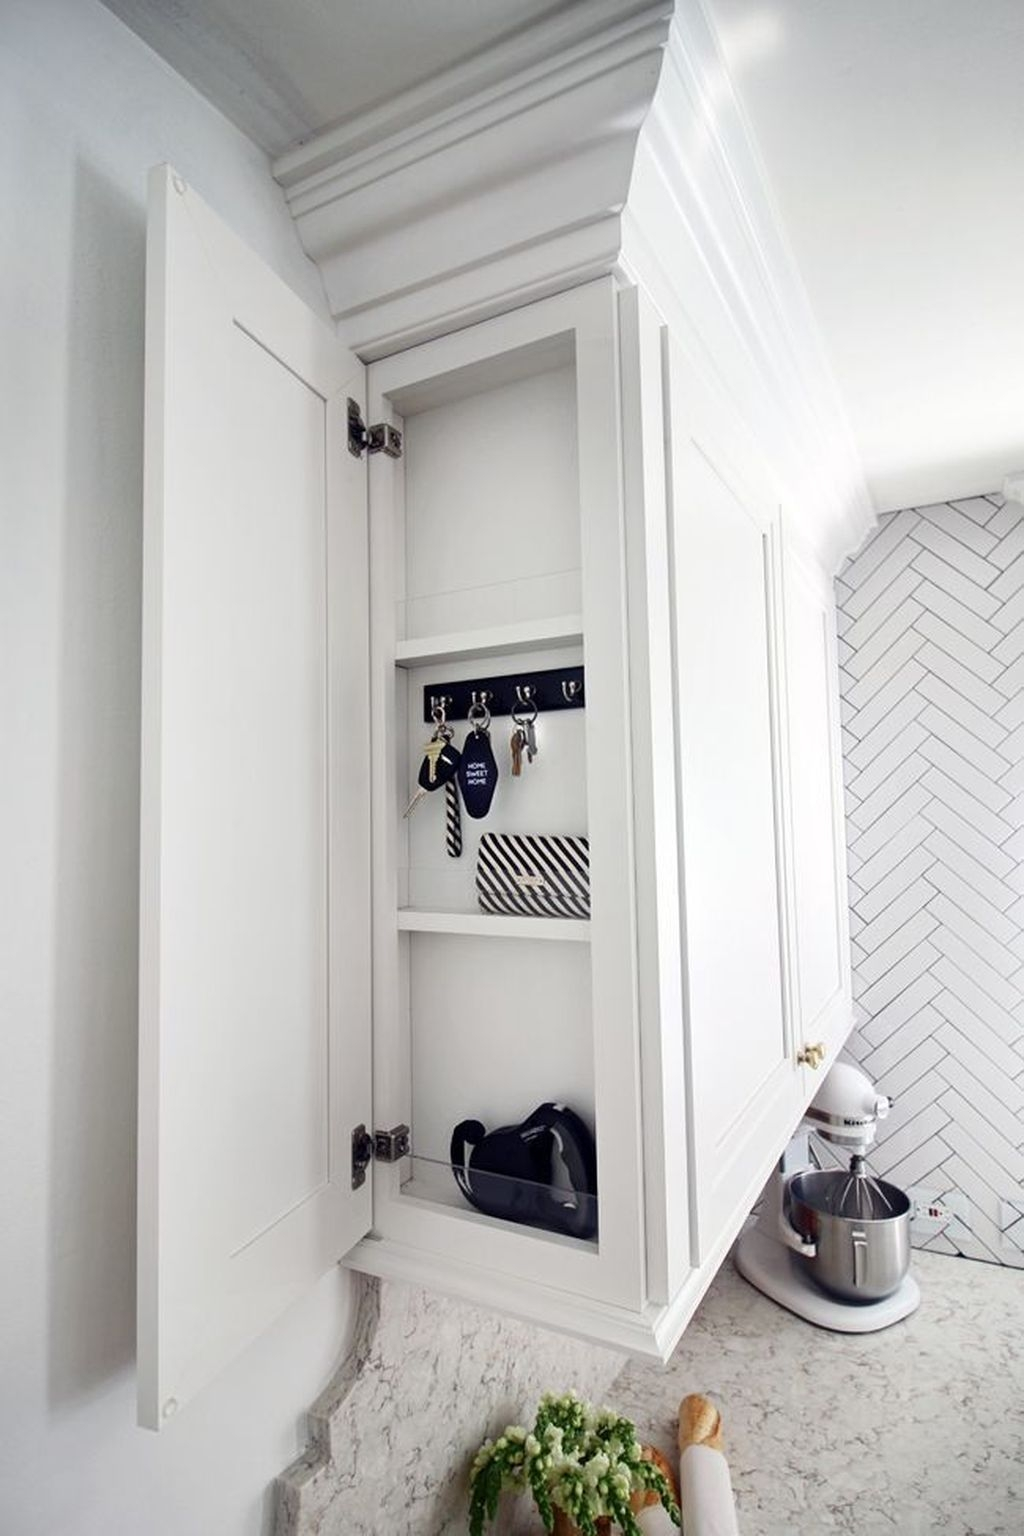 Incredible Kitchen Cabinet Design For Small Spaces 40